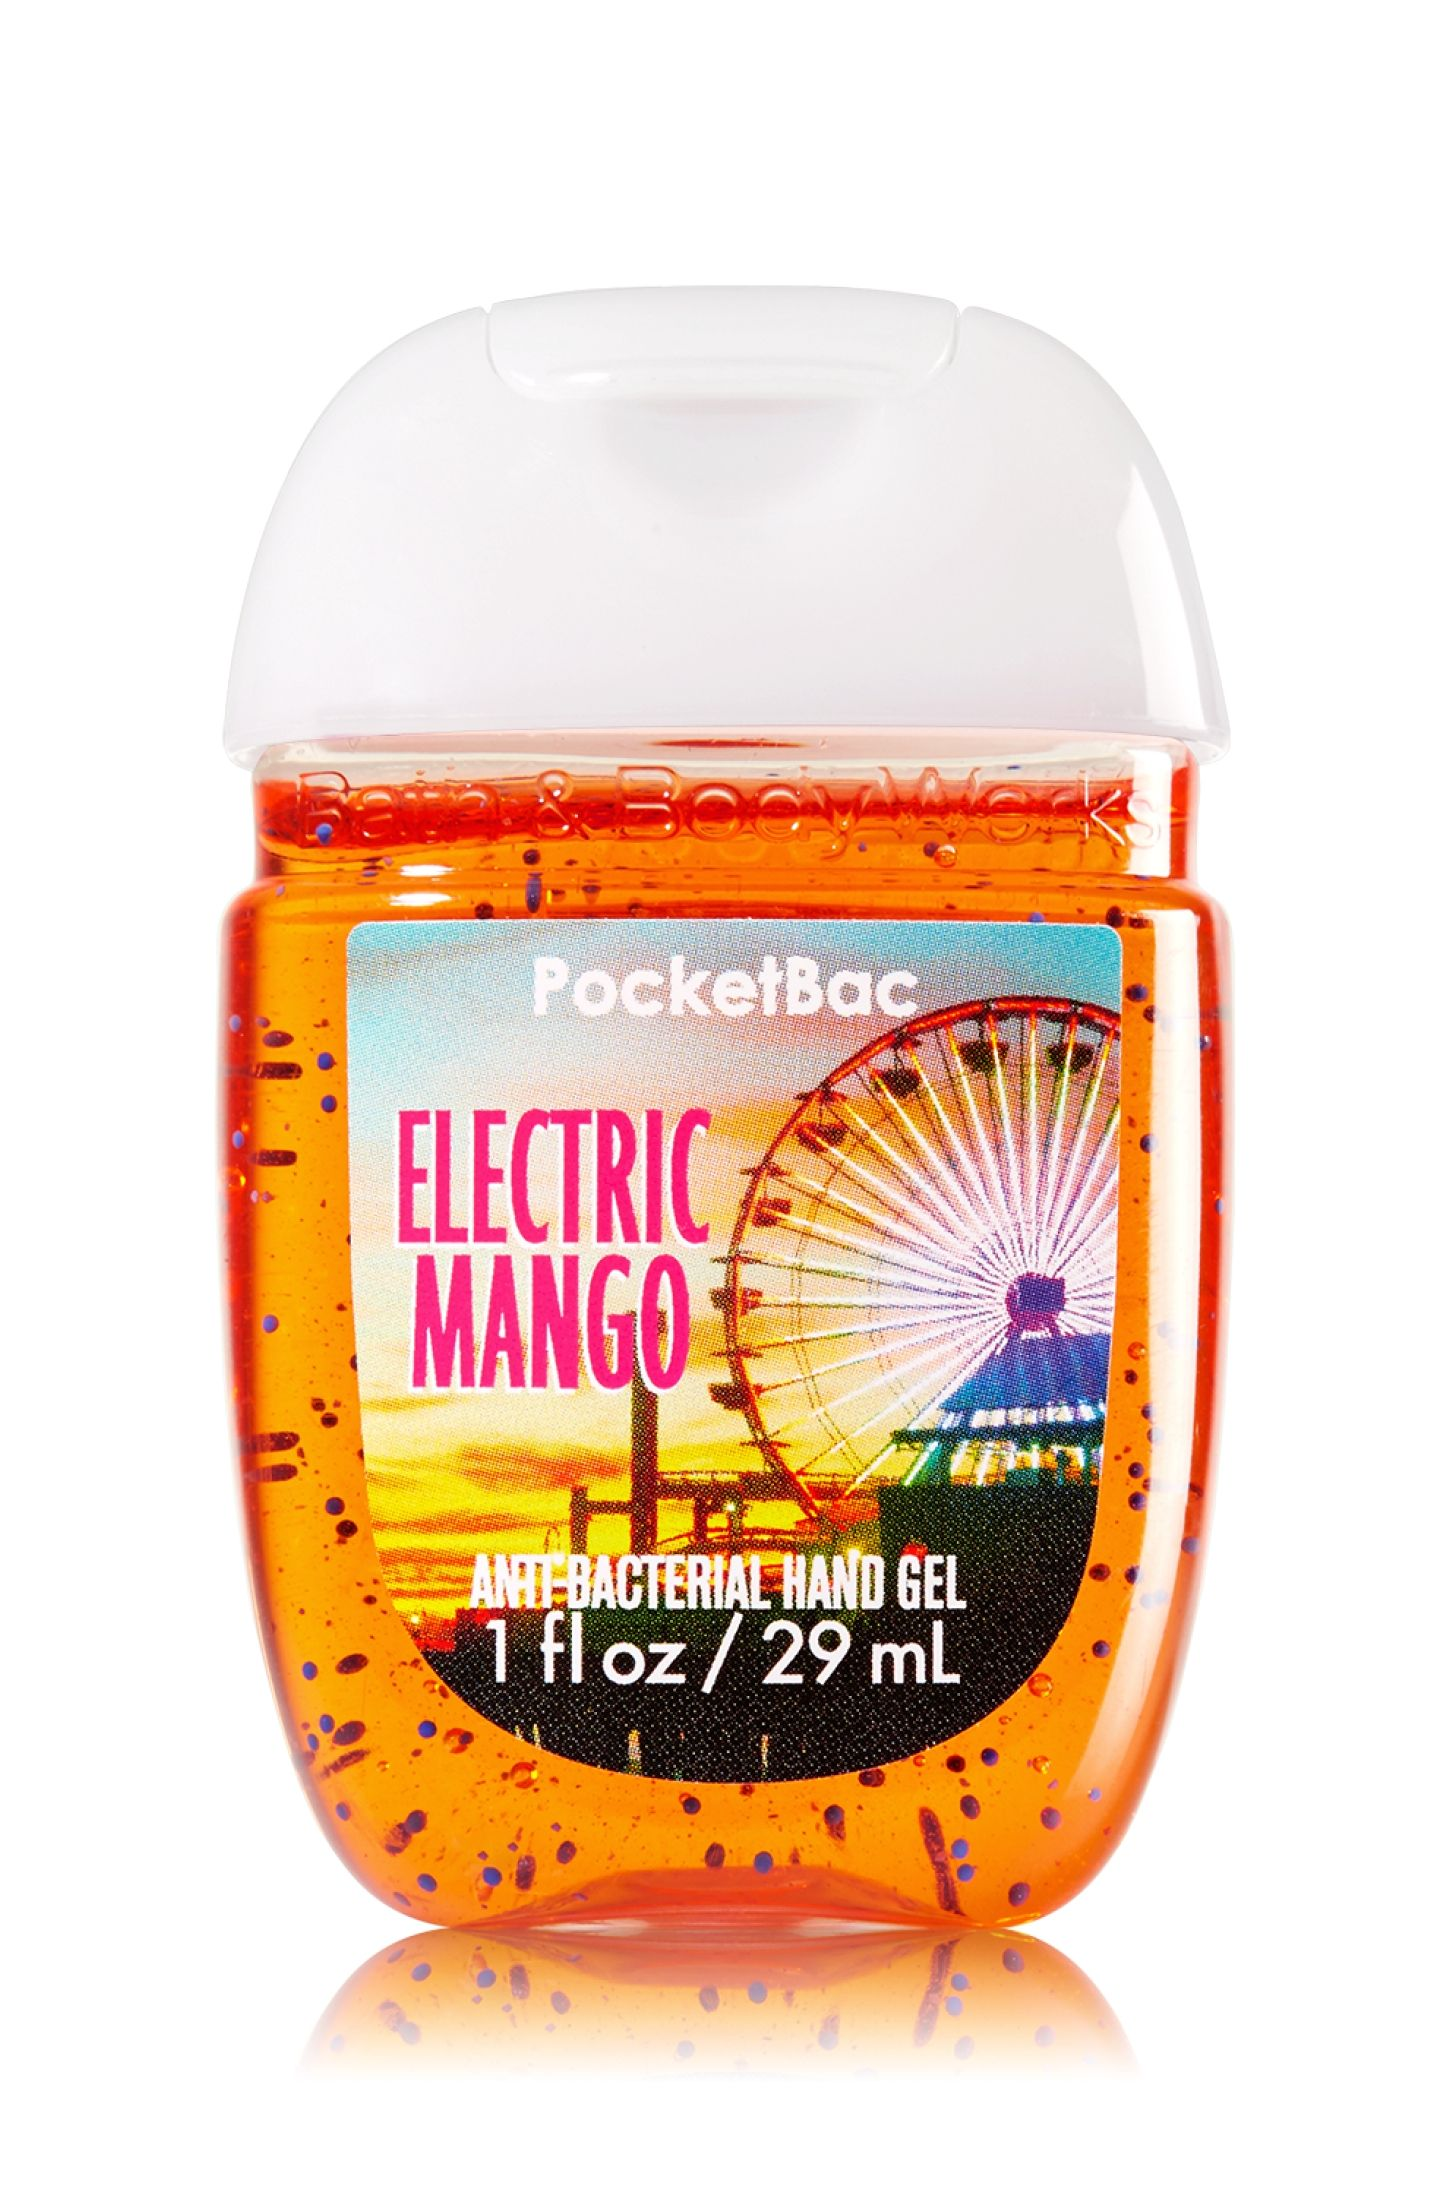 Bath Body Works Electric Mango Pocketbac Sanitizing Hand Gel A